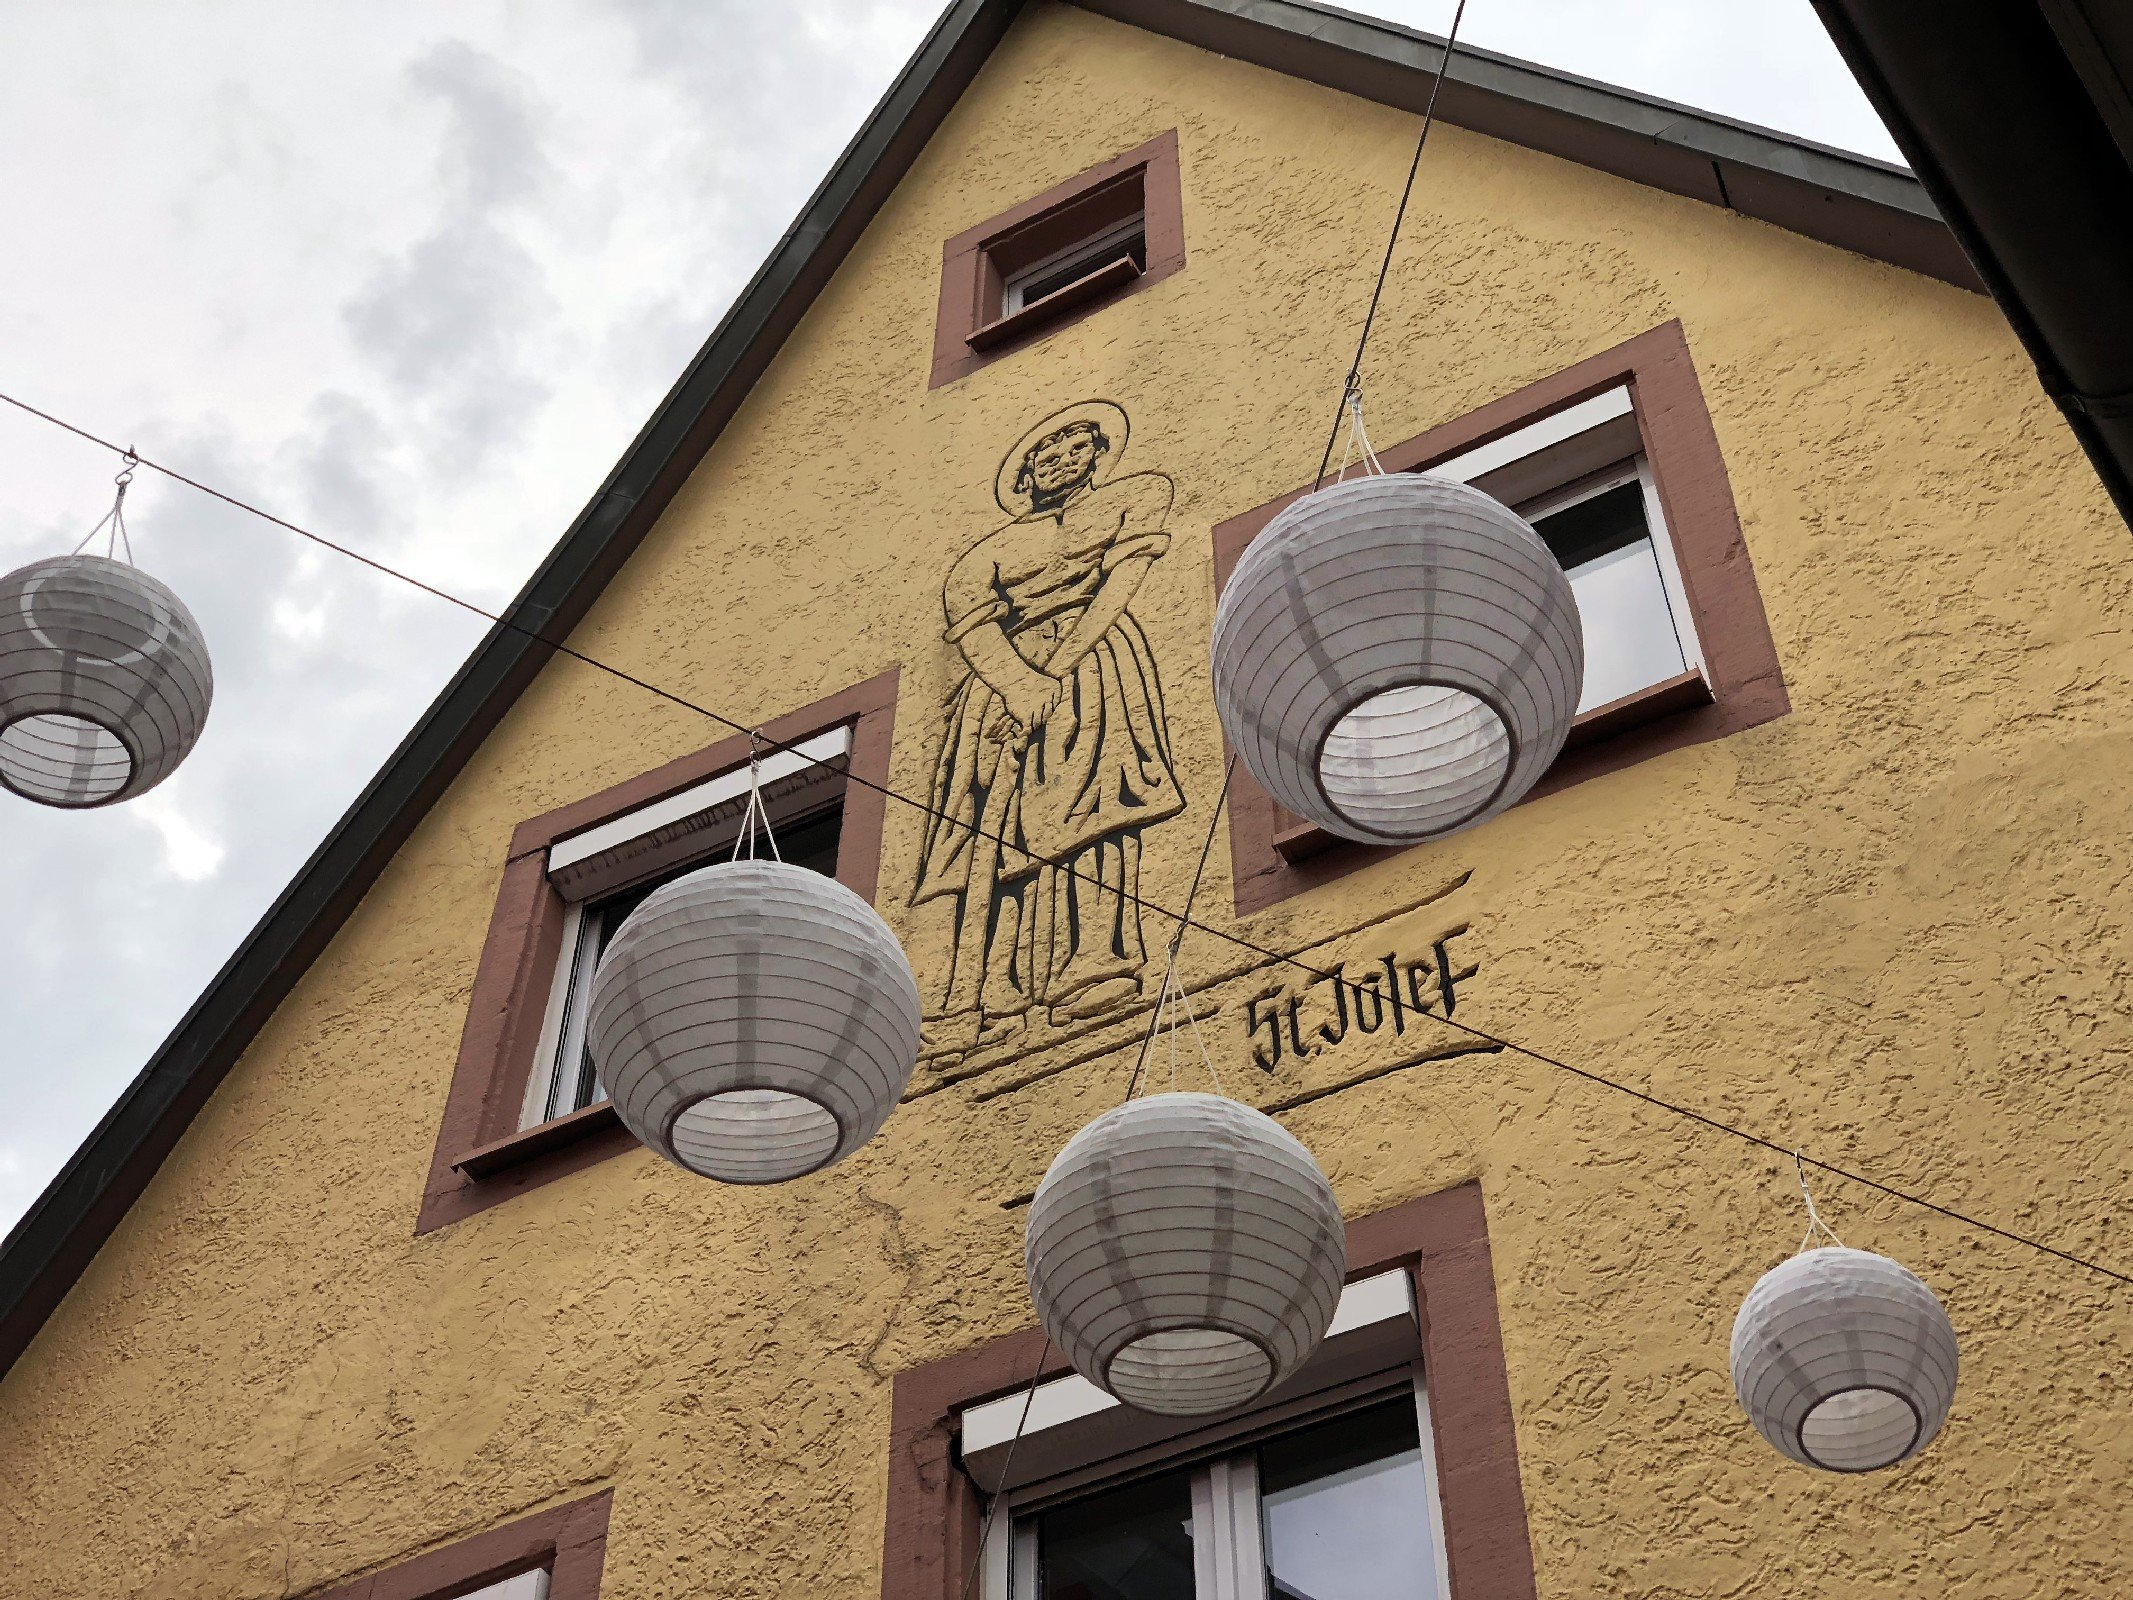 Gasthaus zur Krone in Elzach, Germany by Jets Like Taxis